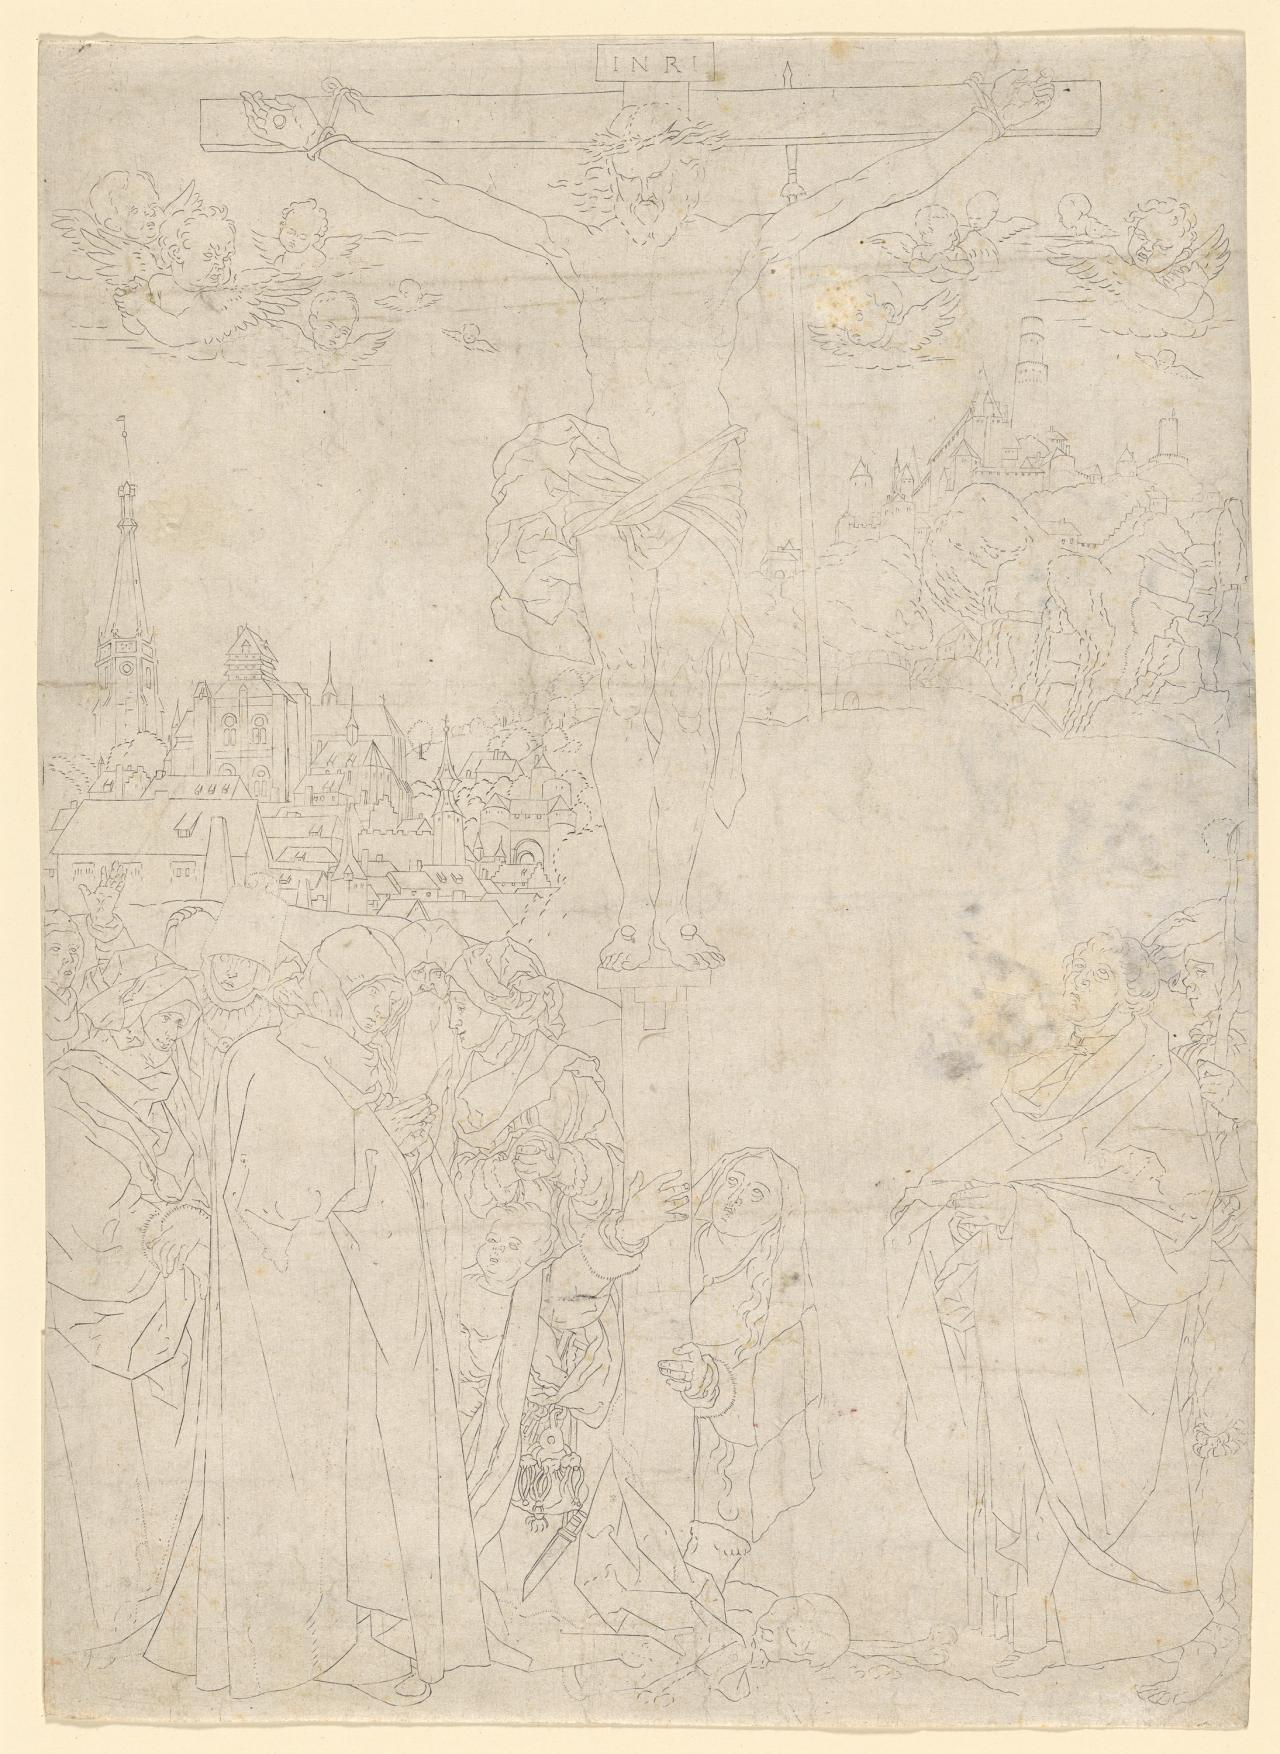 Crucifixion with Many Figures (The Crucifixion in Outline)